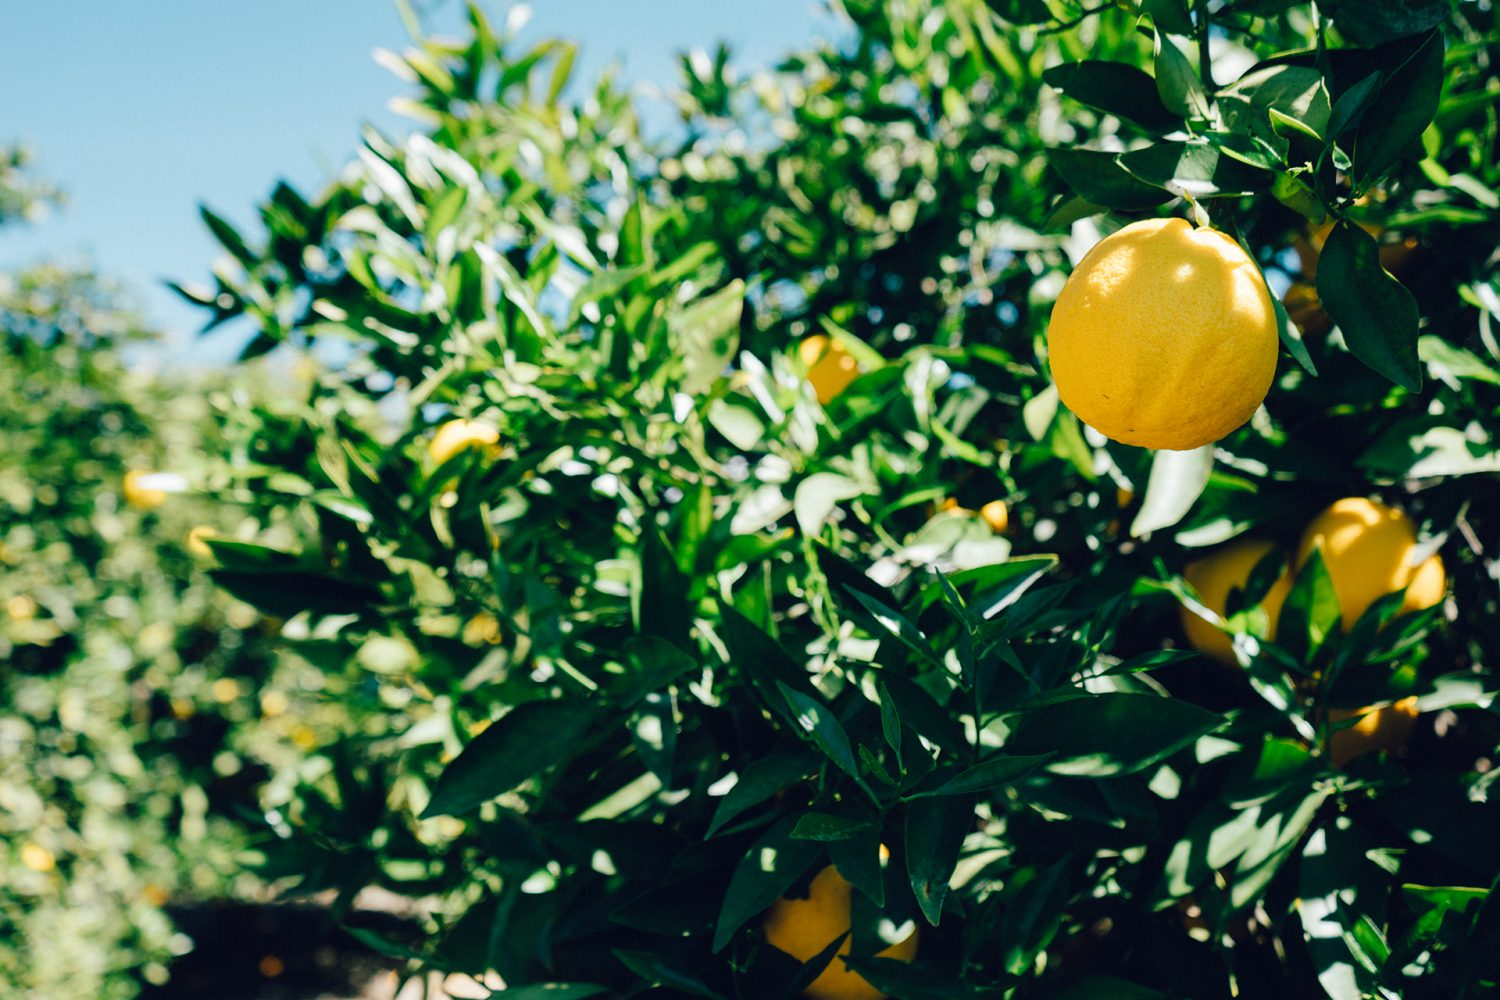 Plant Your Own Lemon Tree And You Will Not Have To Buy Lemons Ever Again. Here's How To Do It